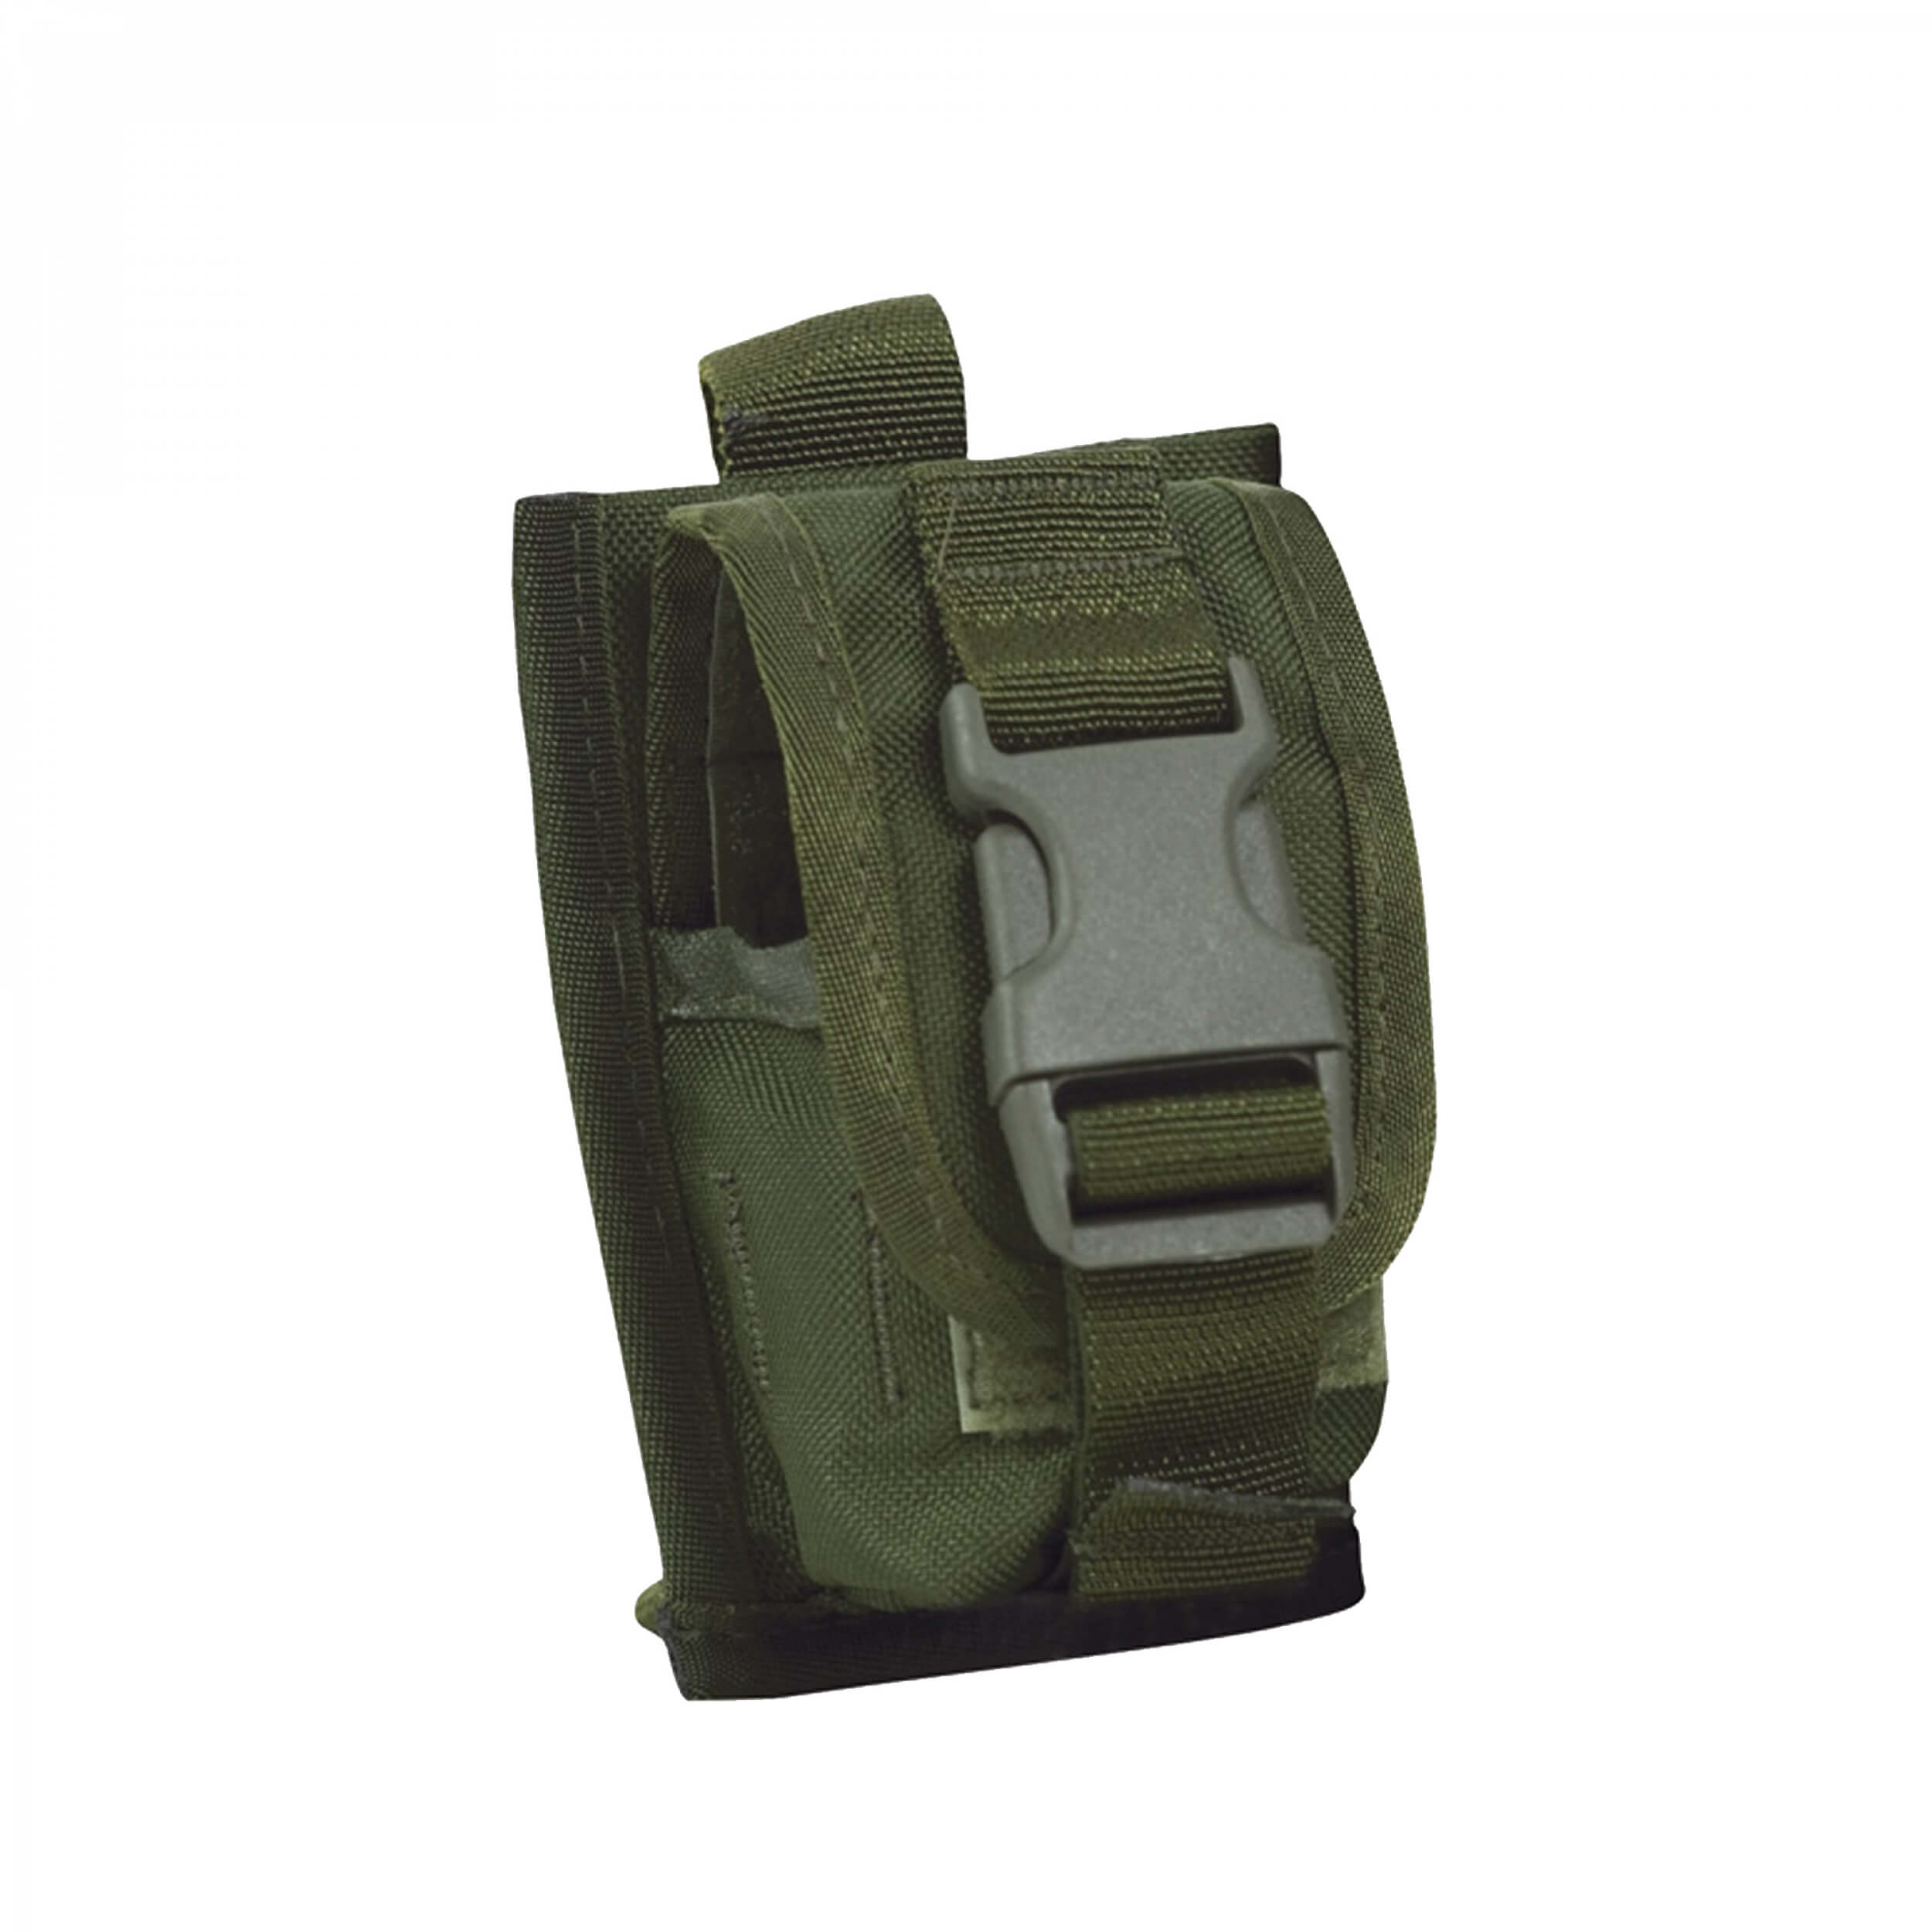 75Tactical Granade Pouch KX1 oliv